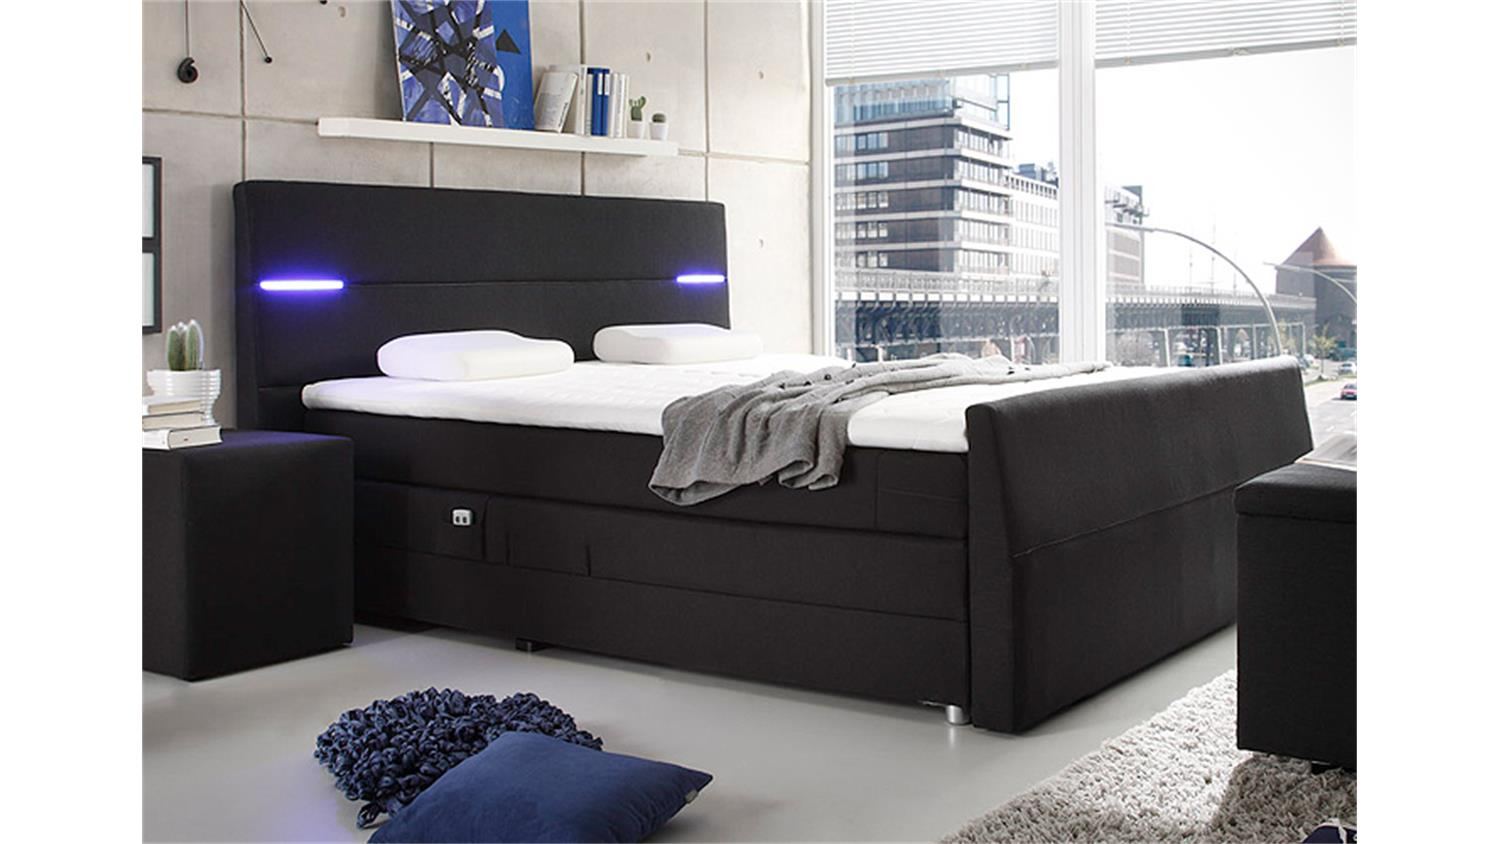 boxspringbett mit beleuchtung sofas ledersofa luxus. Black Bedroom Furniture Sets. Home Design Ideas